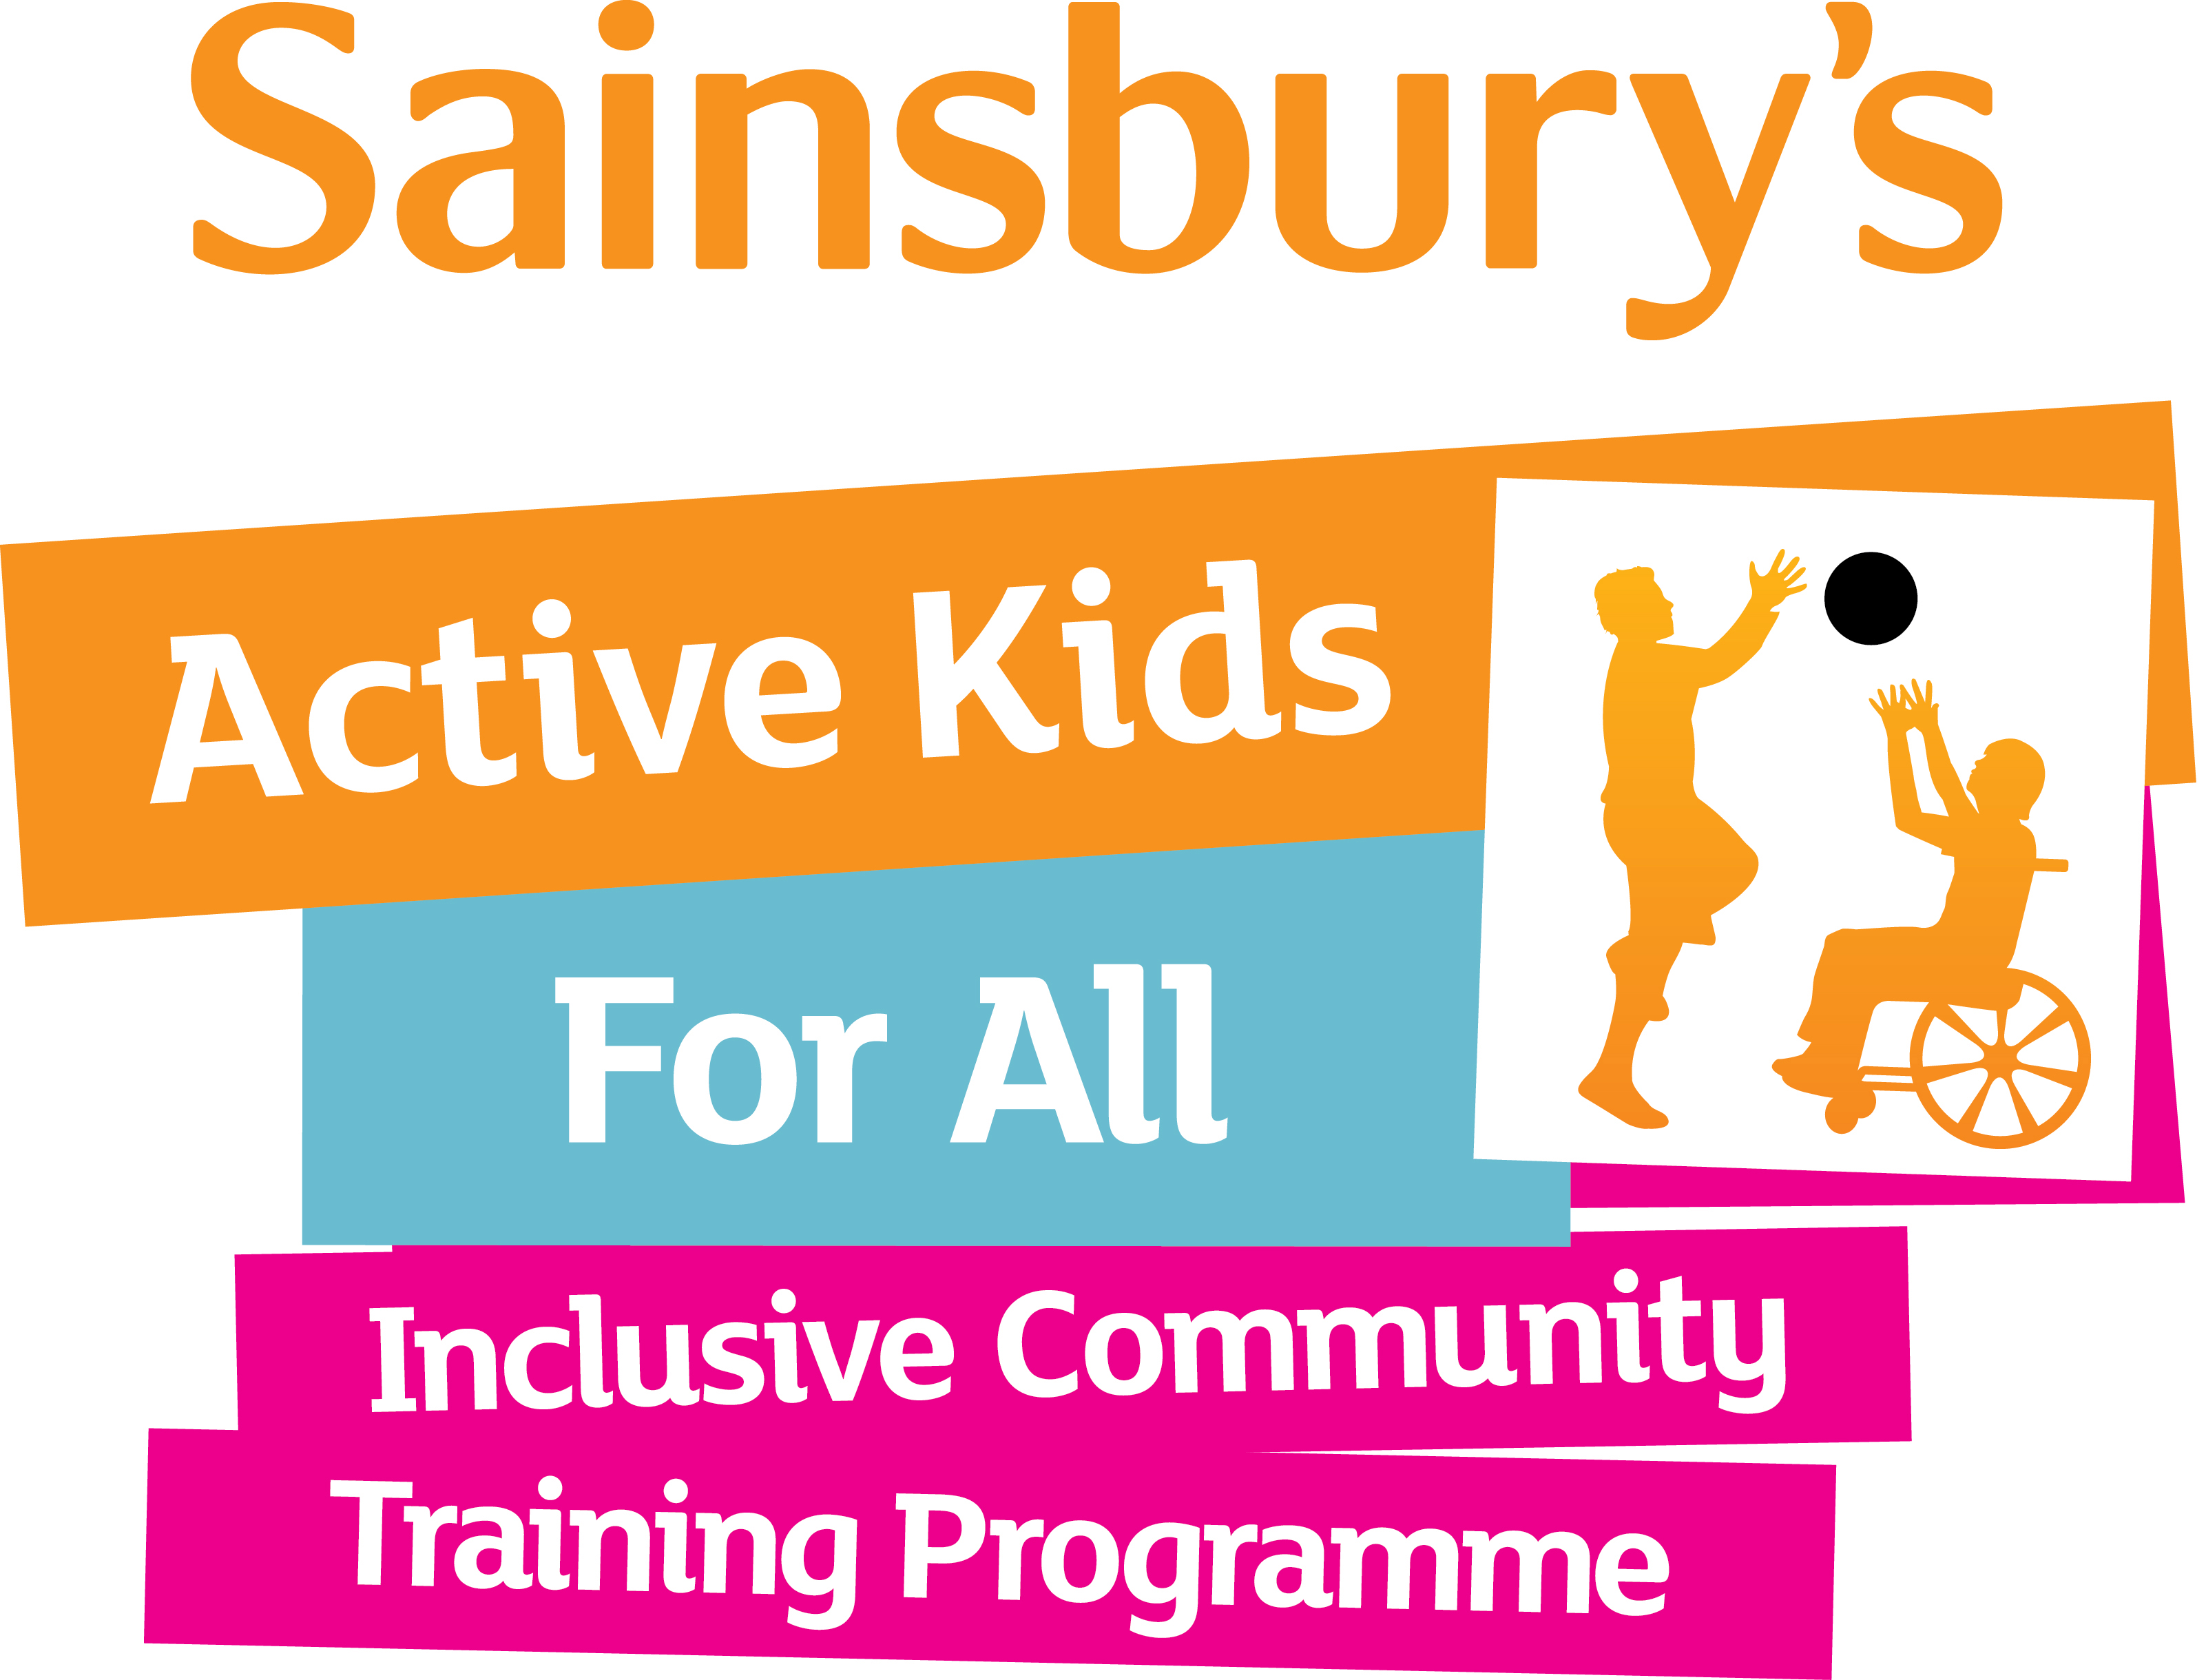 Sainsbury's Active Kids for All